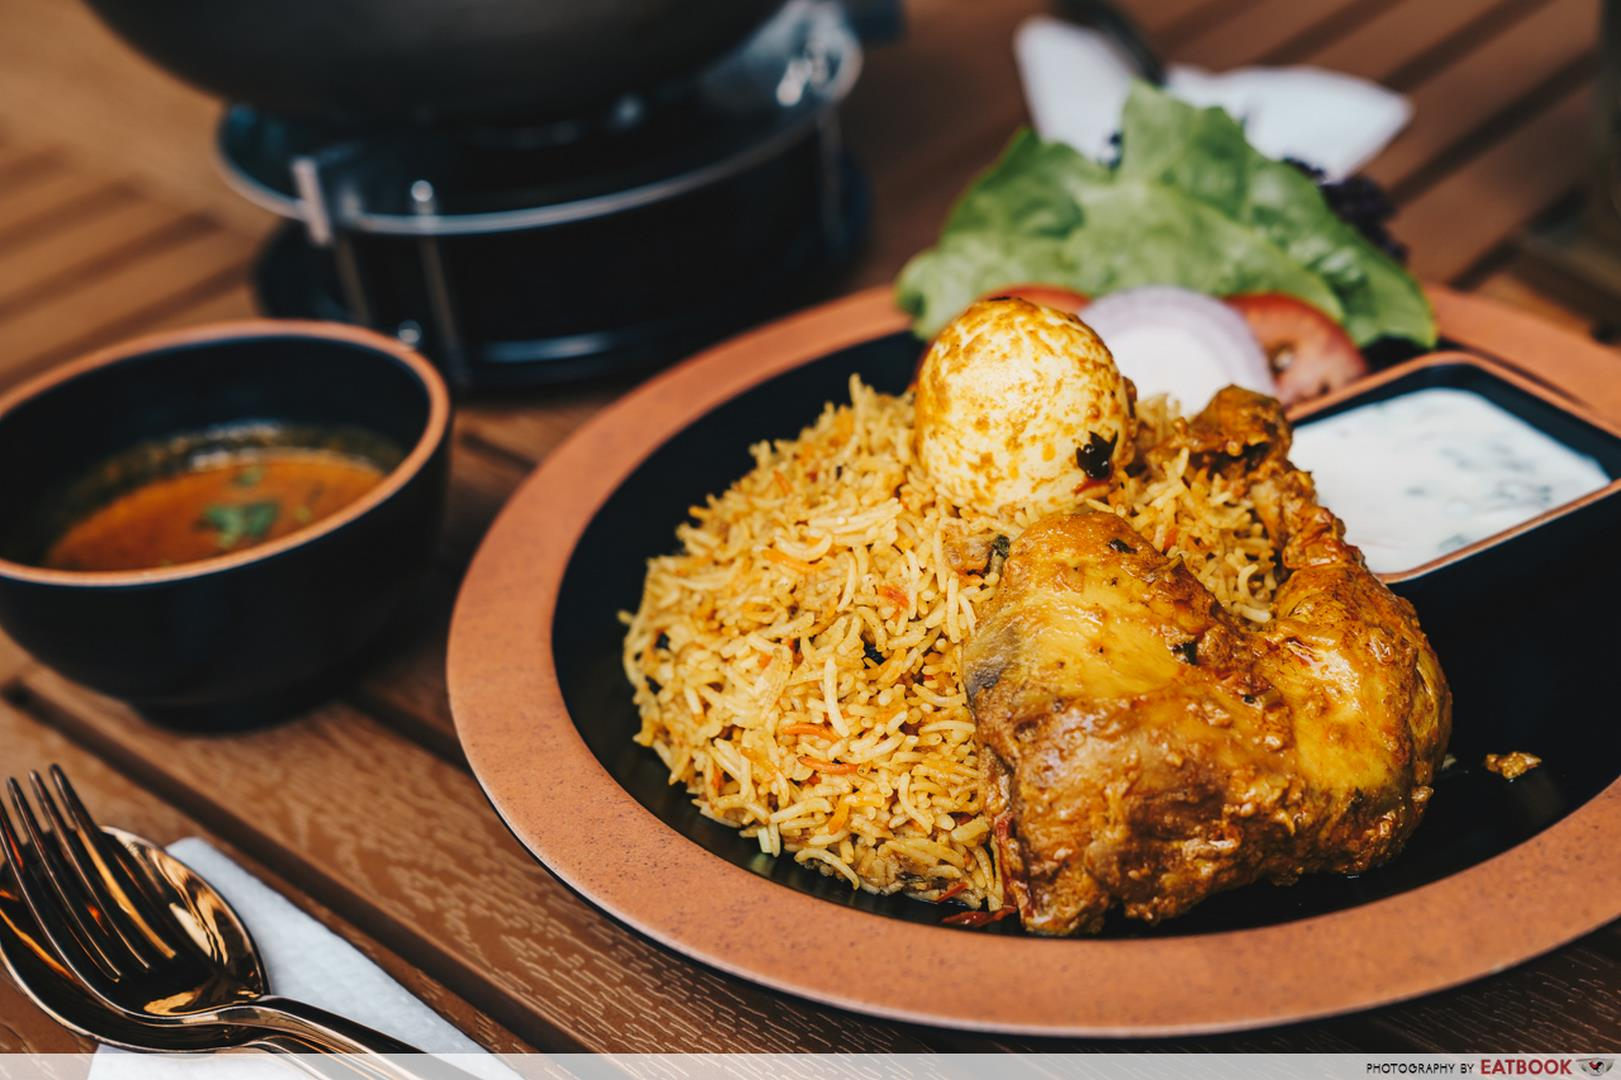 Downtown East Family Flaming Spice Chicken Briyani